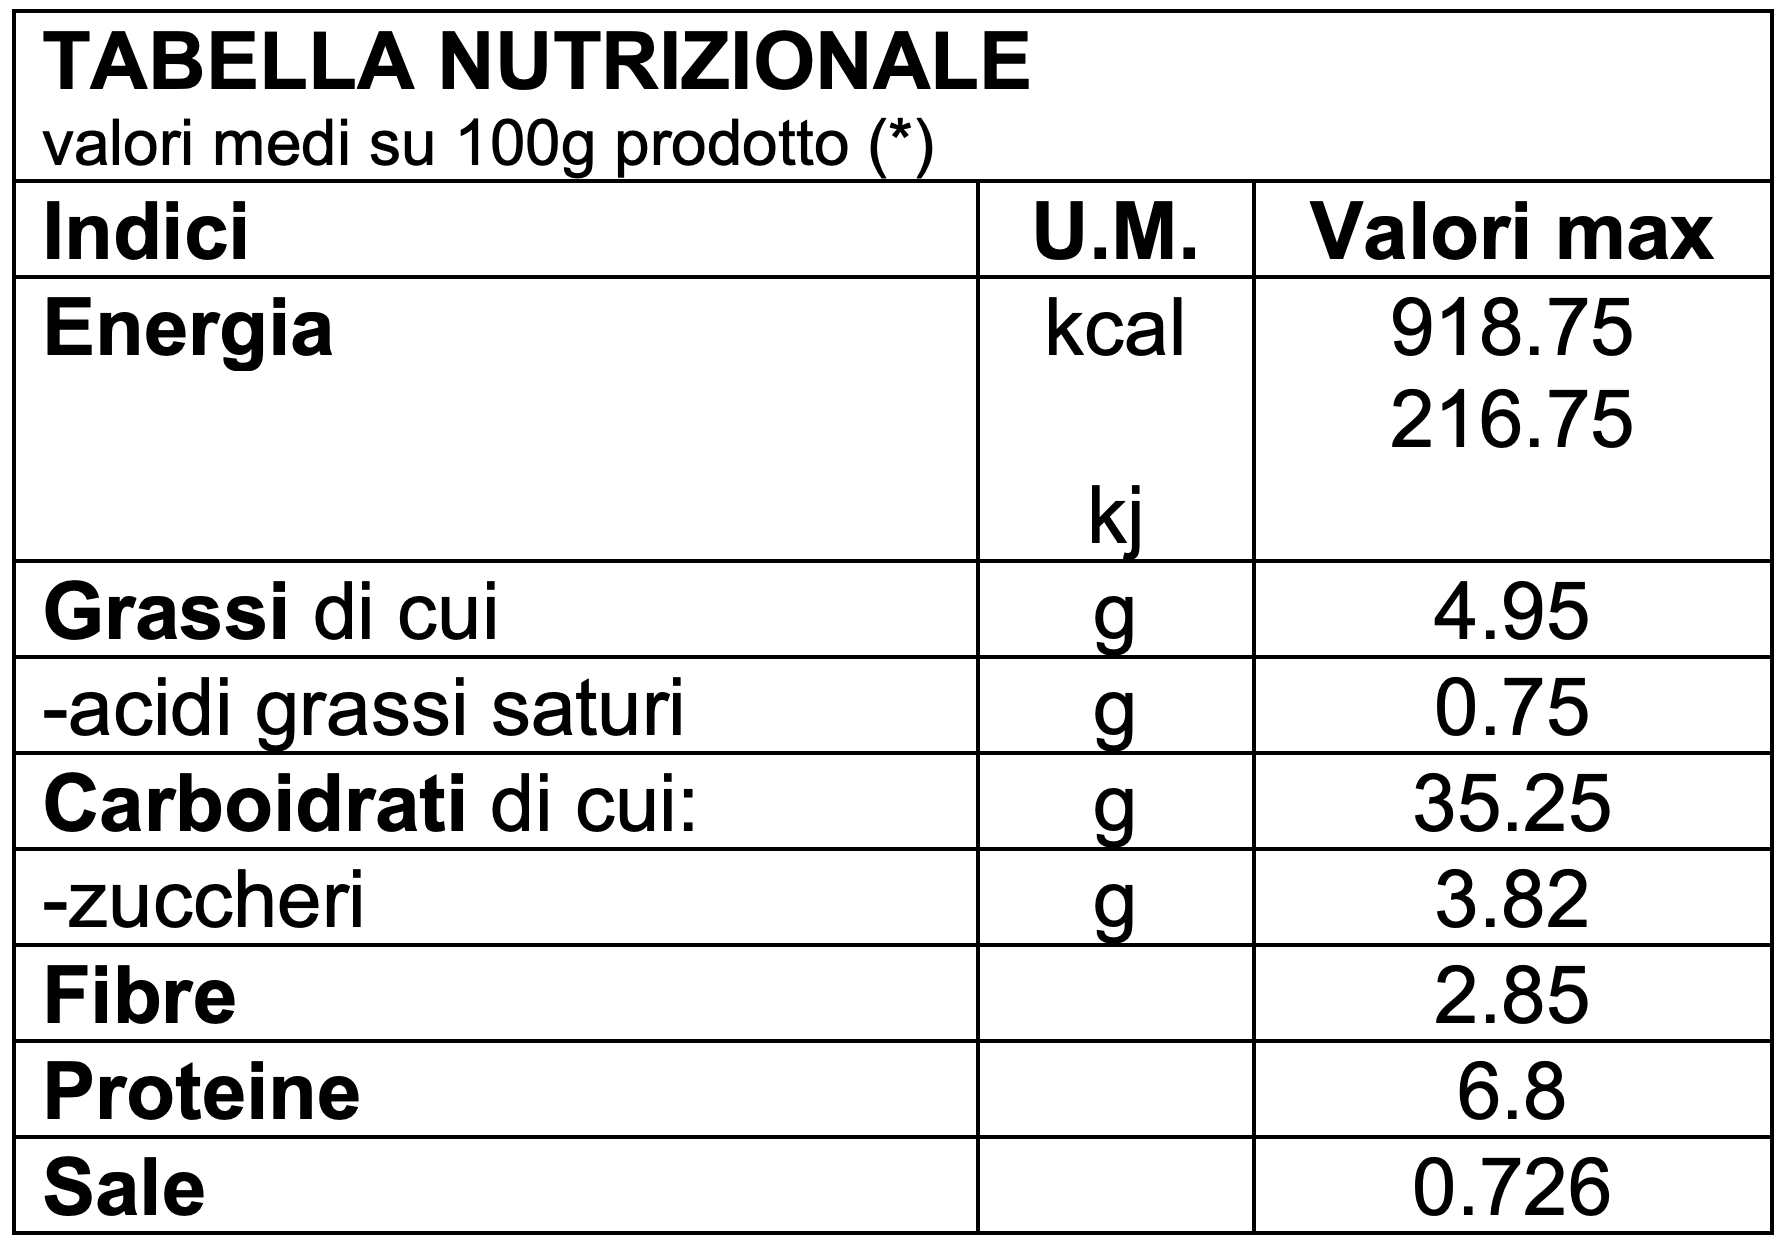 https://www.panem.it/wp-content/uploads/2019/12/tabella-nutrizionale-biologico-cappelli.png